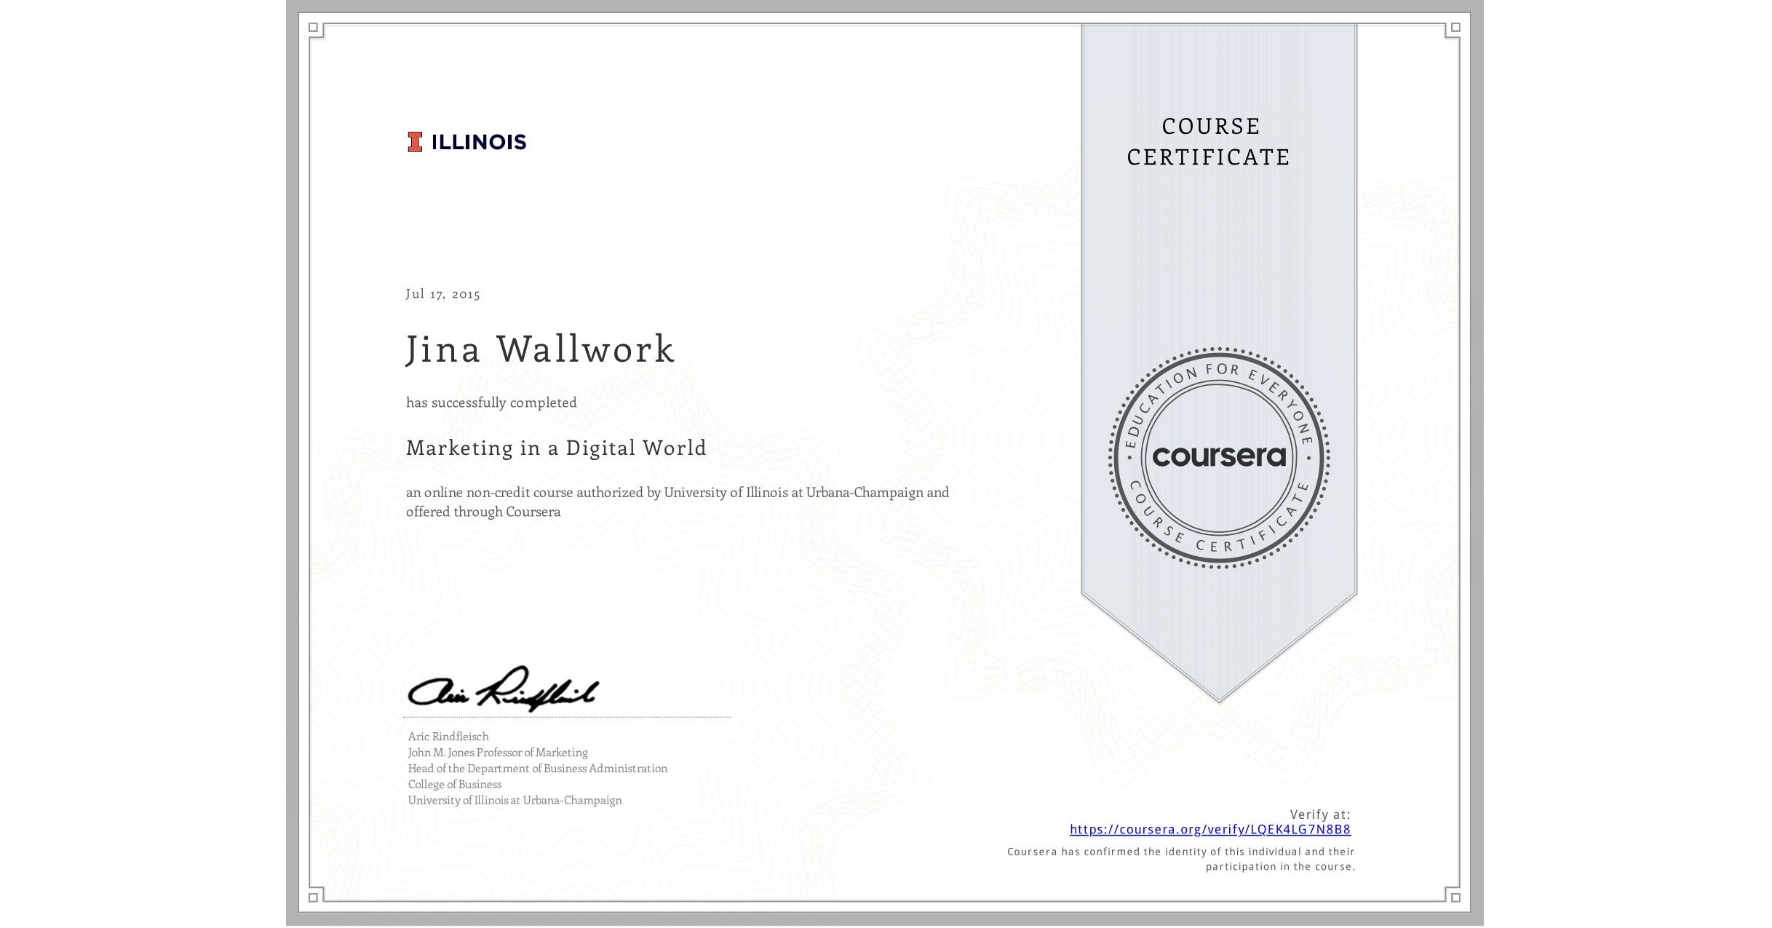 View certificate for Jina Wallwork, Marketing in a Digital World, an online non-credit course authorized by University of Illinois at Urbana-Champaign and offered through Coursera